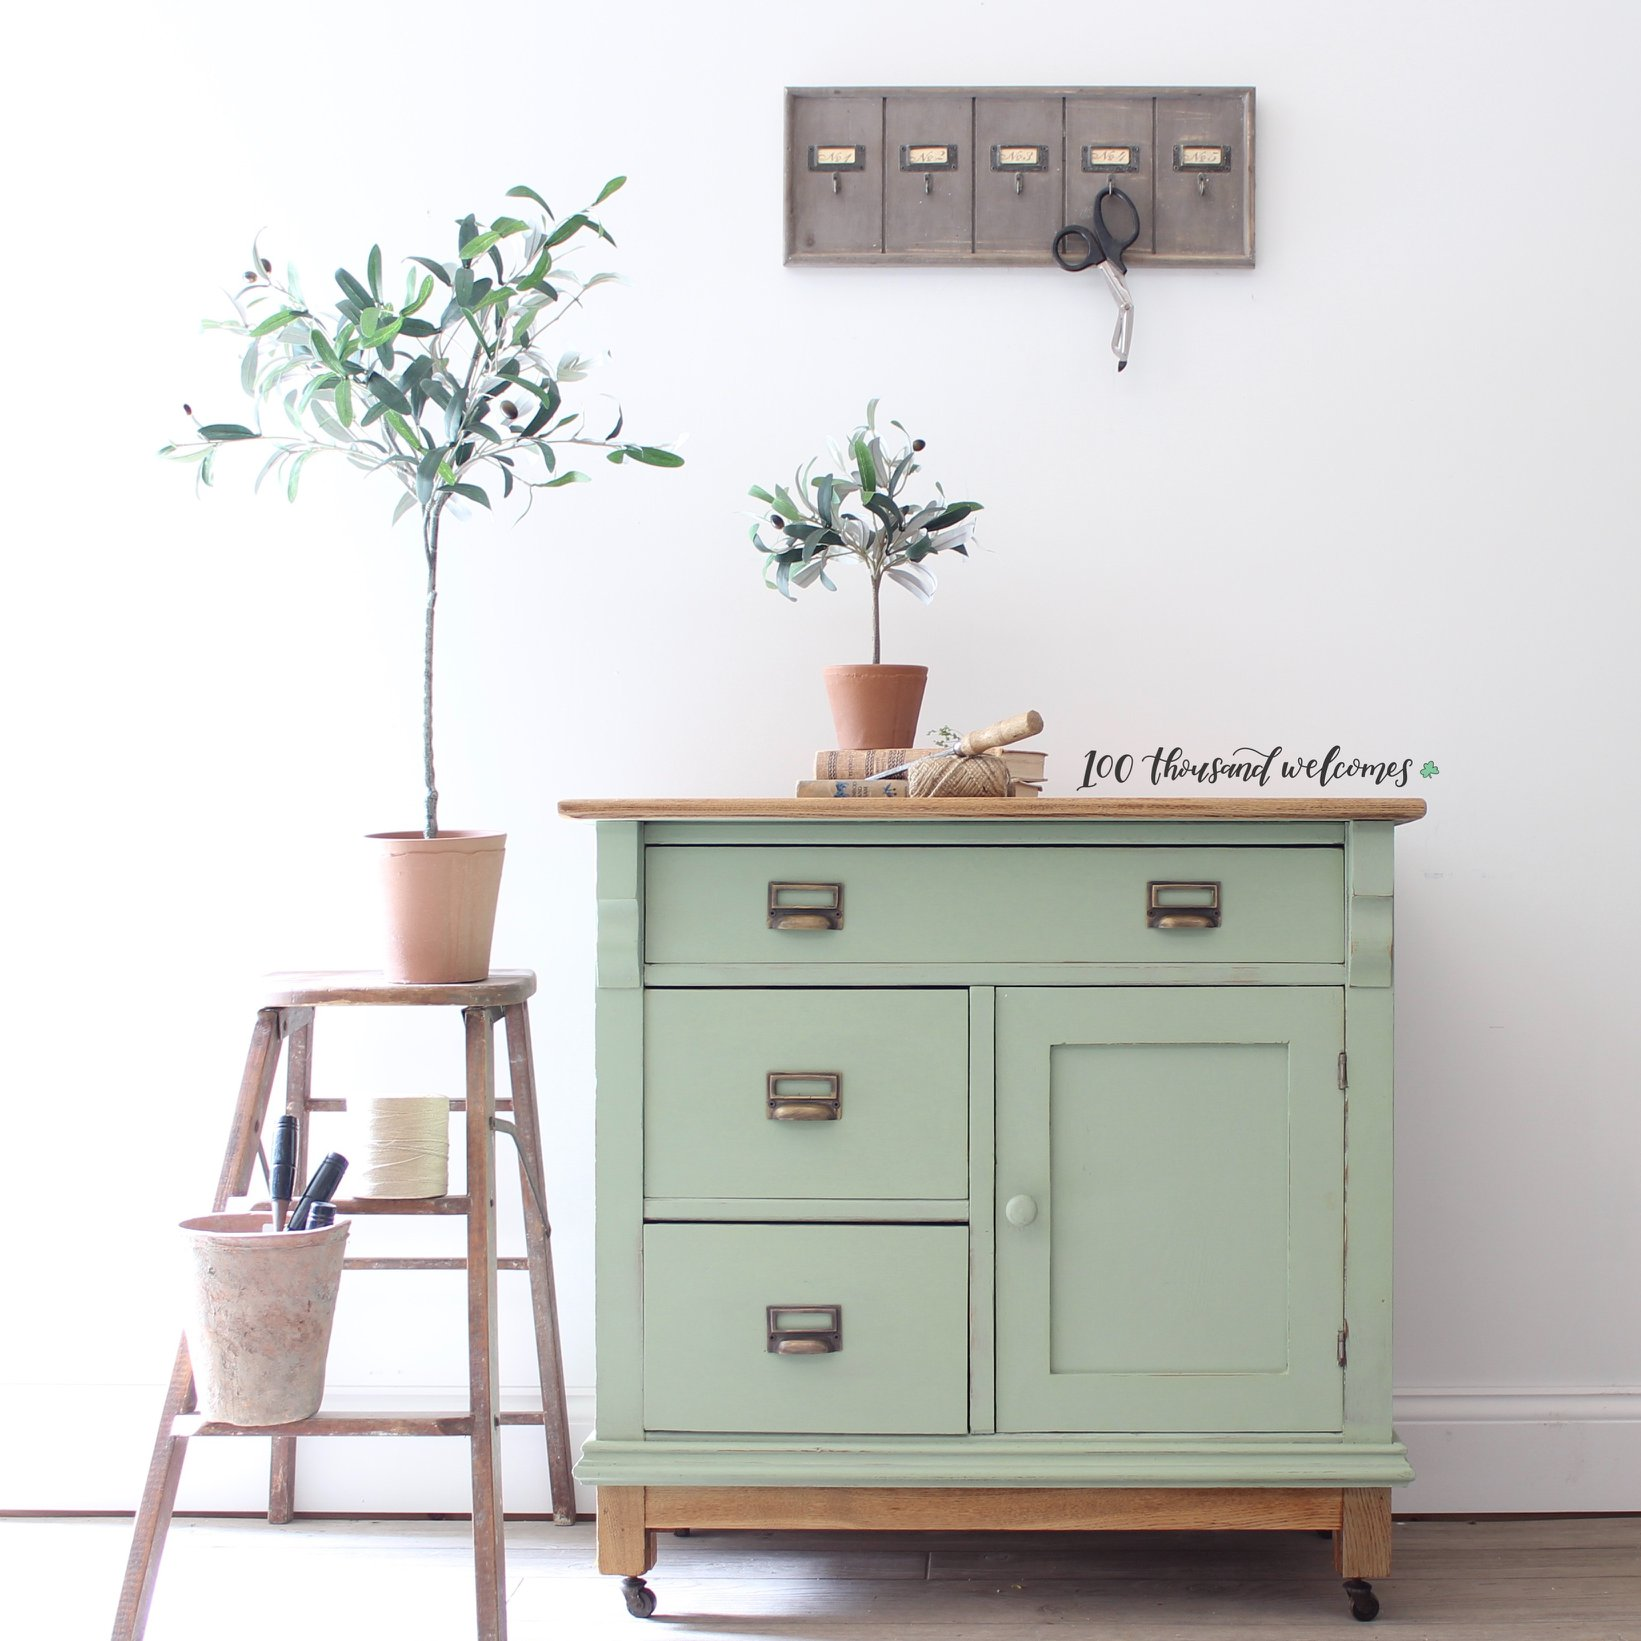 Farmhouse Storage Cabinet in Sage Advice with Library Pulls and Natural Wood Top